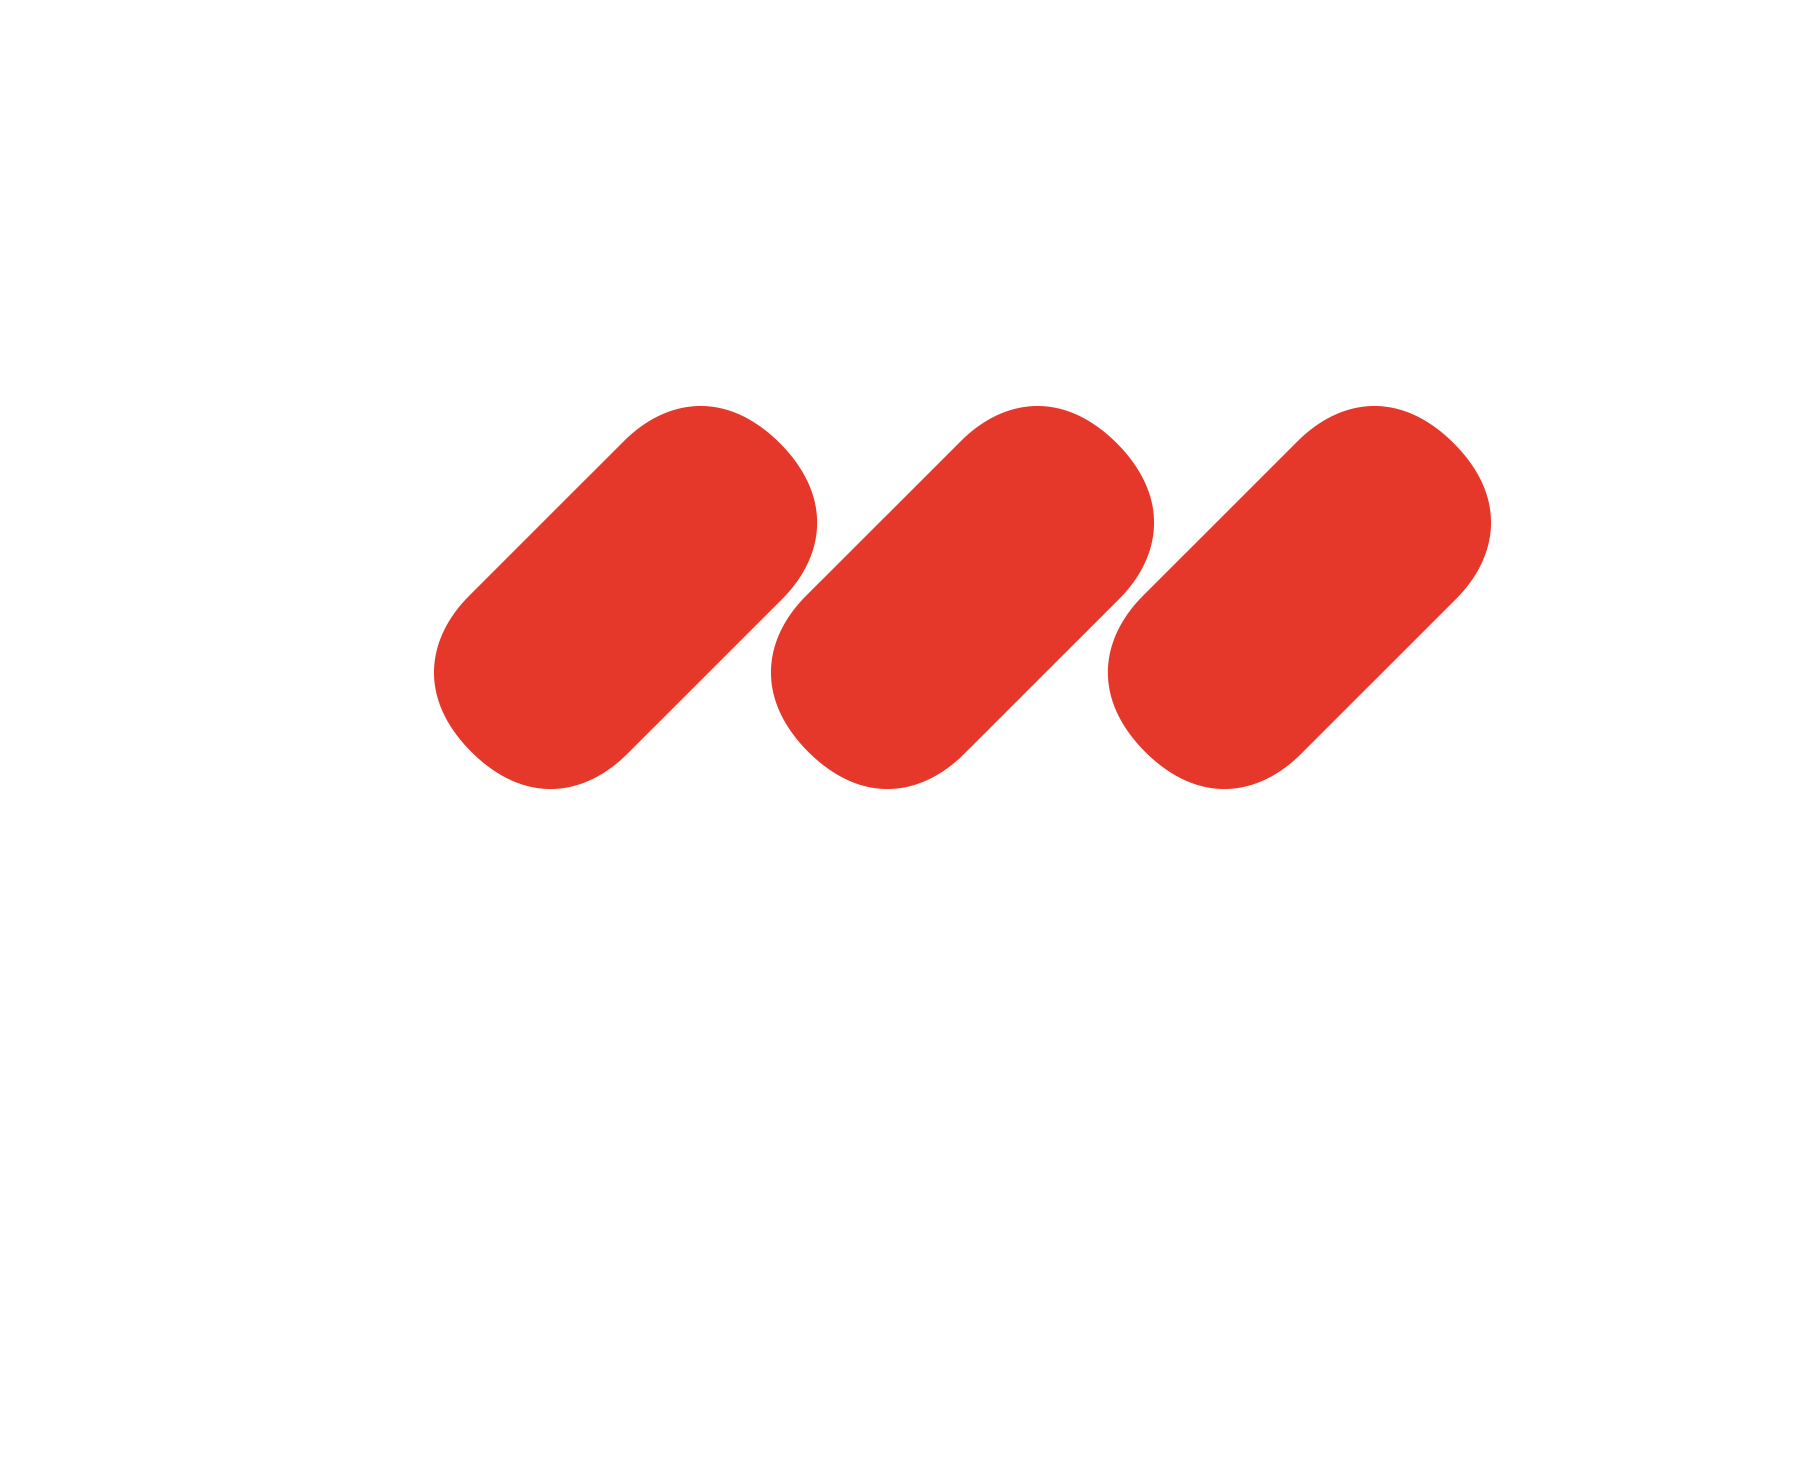 Home Mediapro Canada